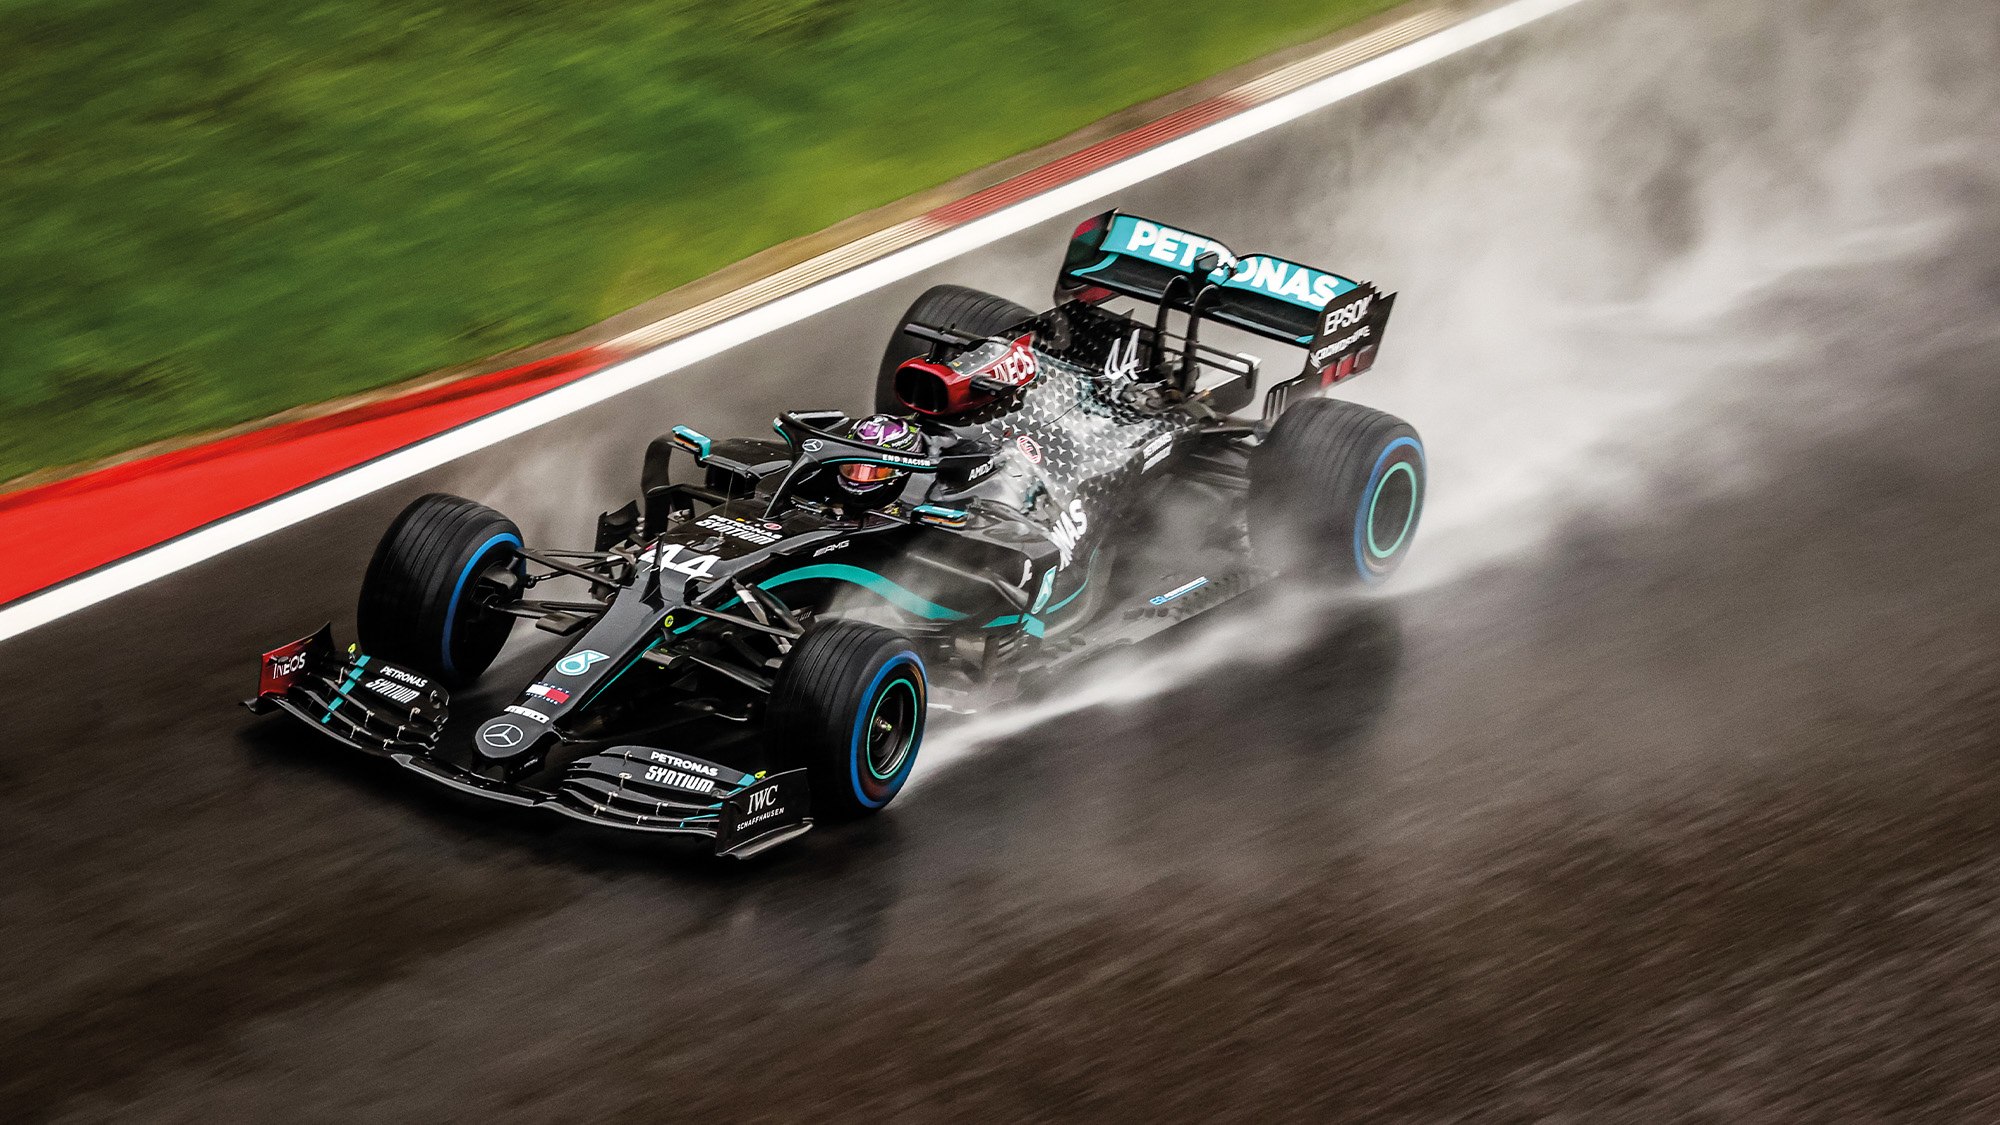 Lewis Hamilton powers through the rain at a wet Istanbul Park ahead of the 2020 Turkish Grand Prix